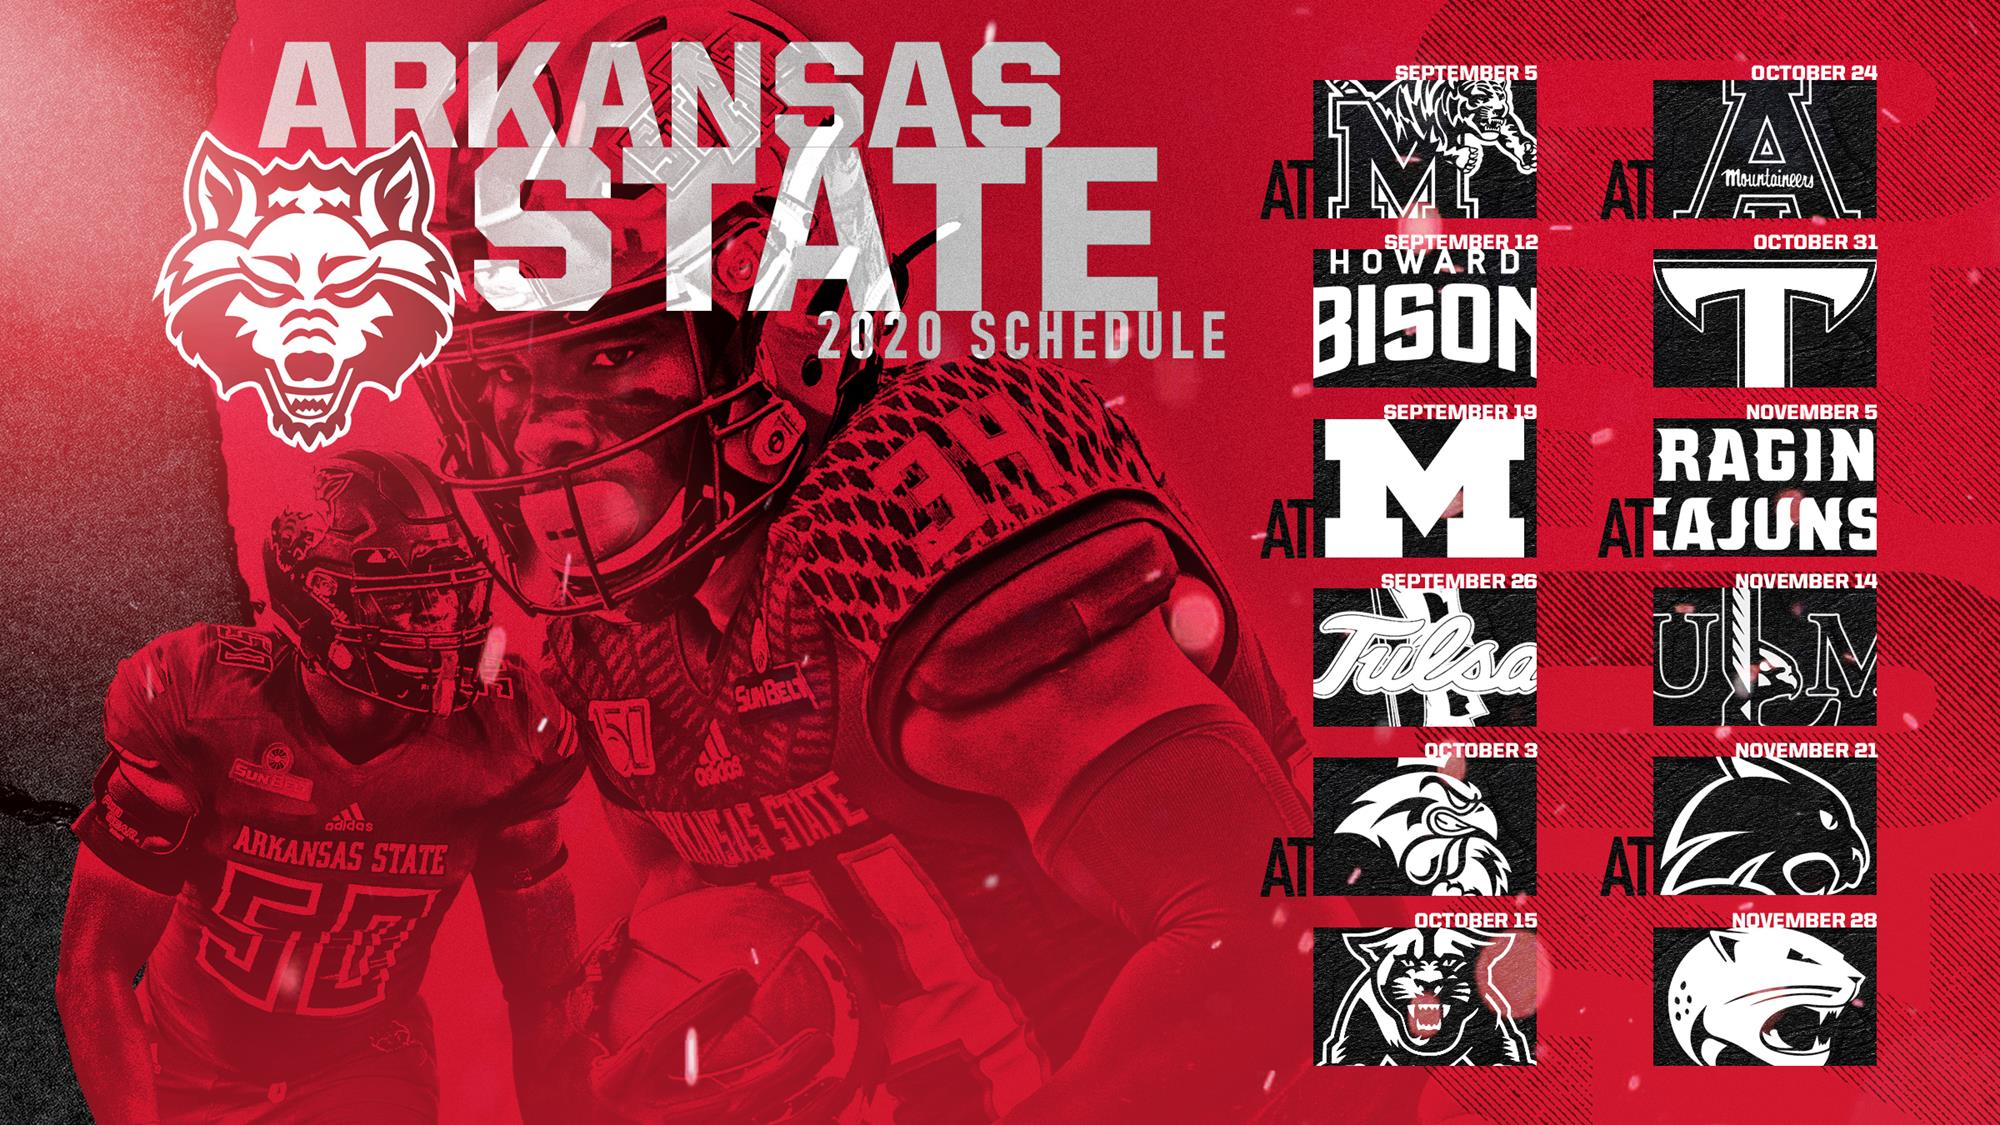 A State Announces 2020 Football Schedule - Arkansas State Inside Arkansas State University Holiday Schedule